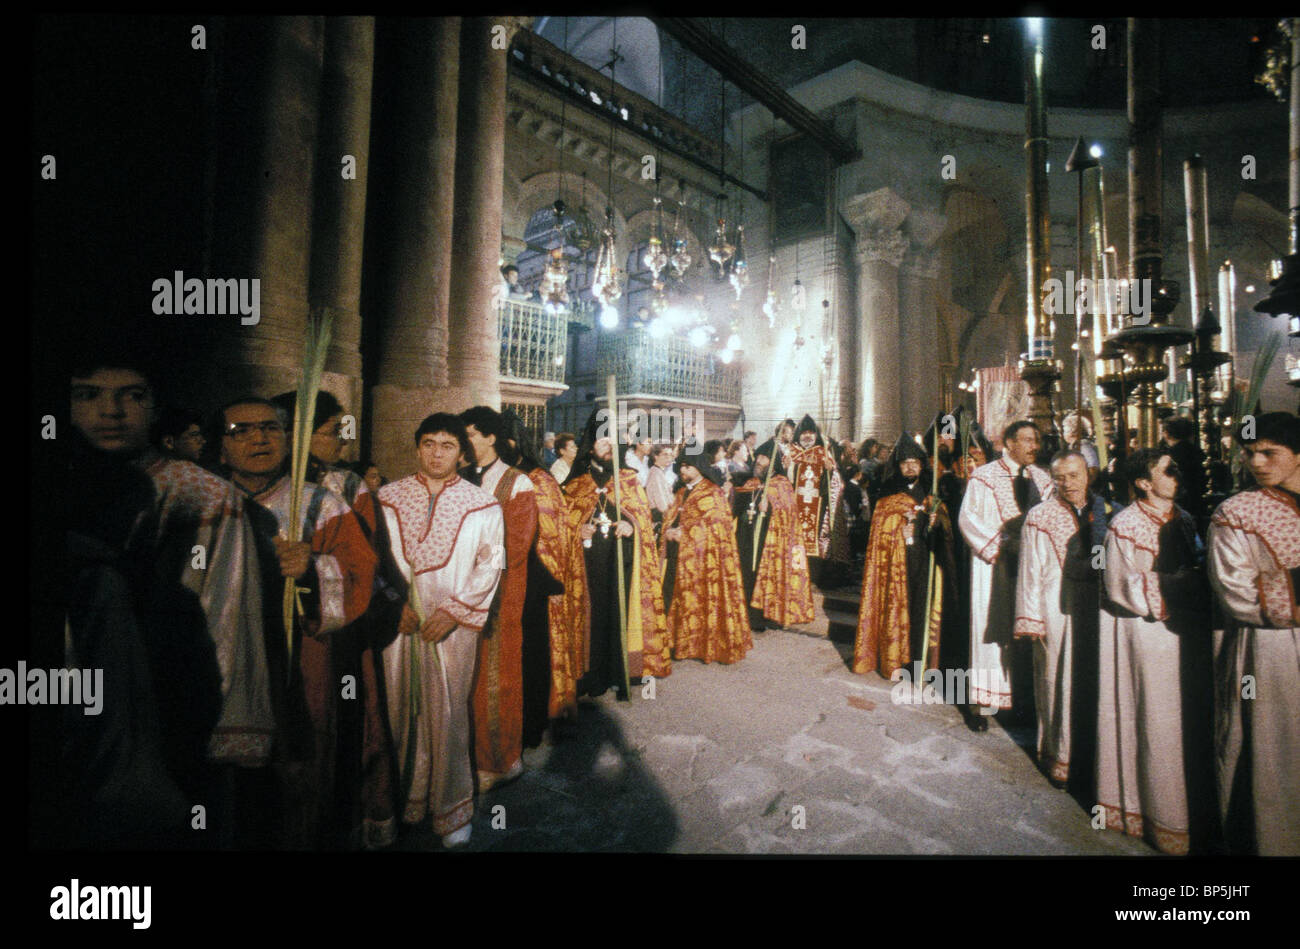 3986. CELEBRATIONS OF LENT AT EASTER BY THE ARMENIAN PATRIARCH IN THE CHURCH OF THE HOLY SEPULCHER - Stock Image